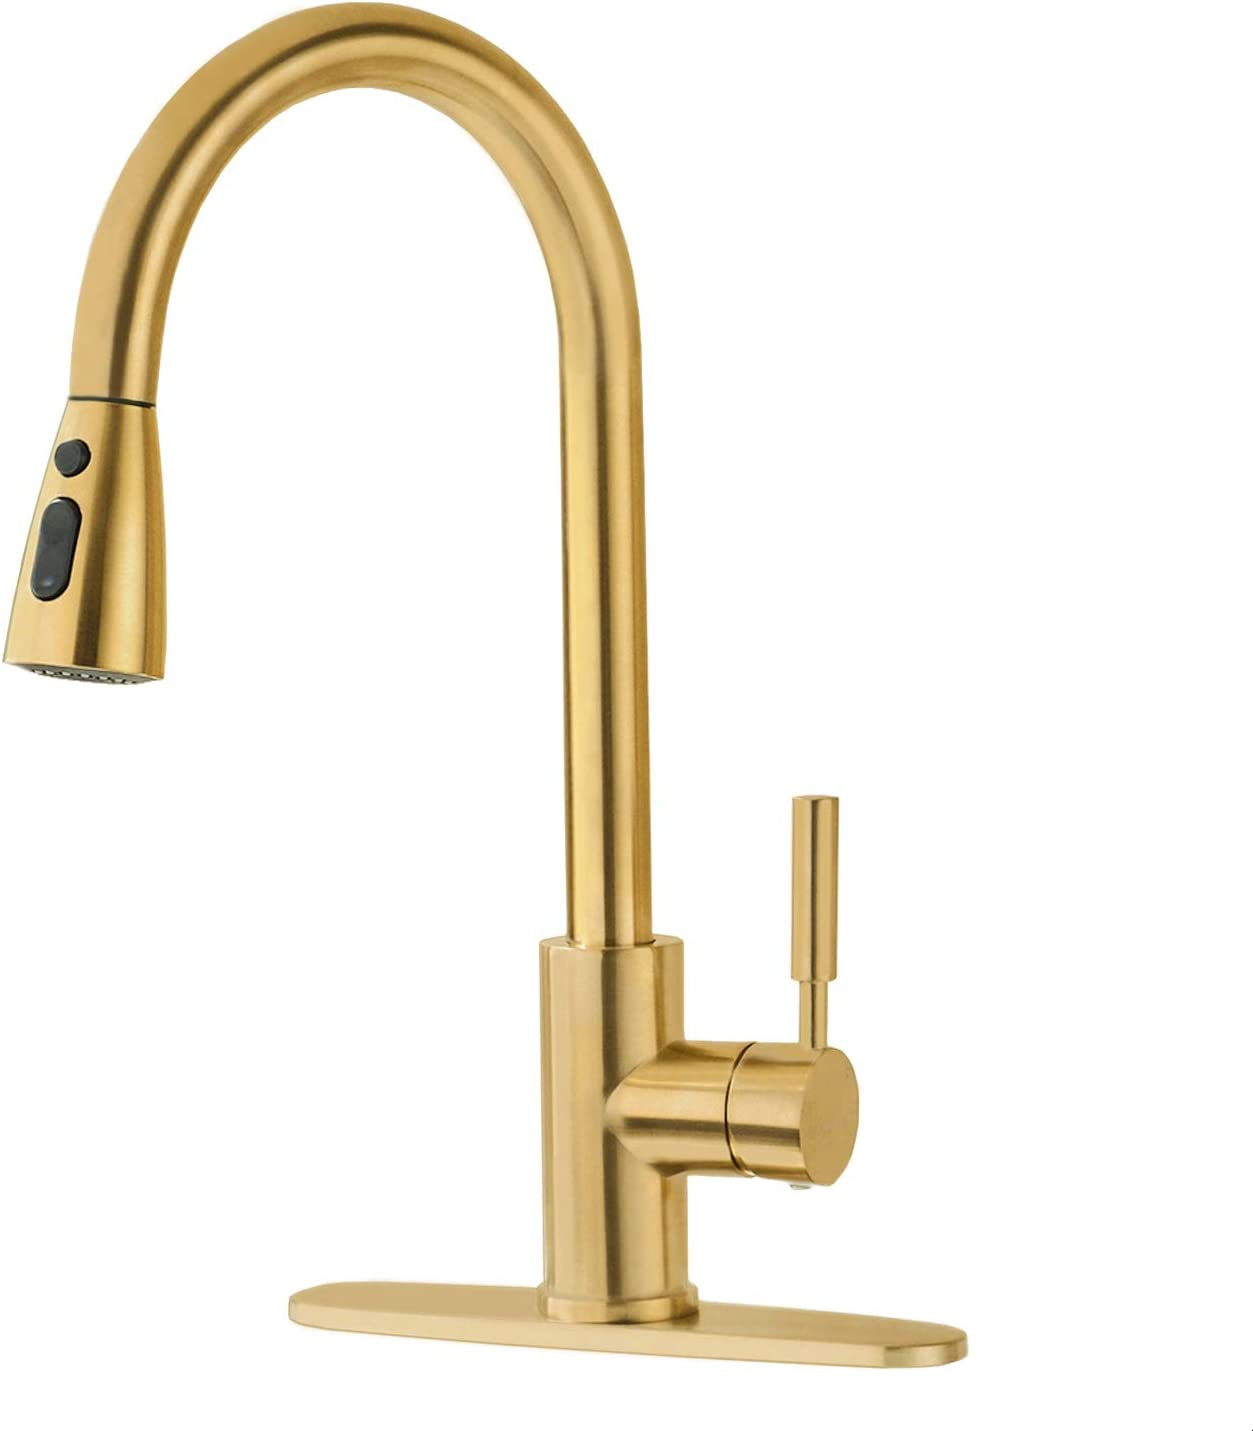 Brushed Gold Kitchen Faucet with Pull Down Sprayer, Fonveth Single Handle High Arc Pull out Kitchen Sink Faucet, Single Hole Kitchen Faucets with Deck Plate,Brushed Brass